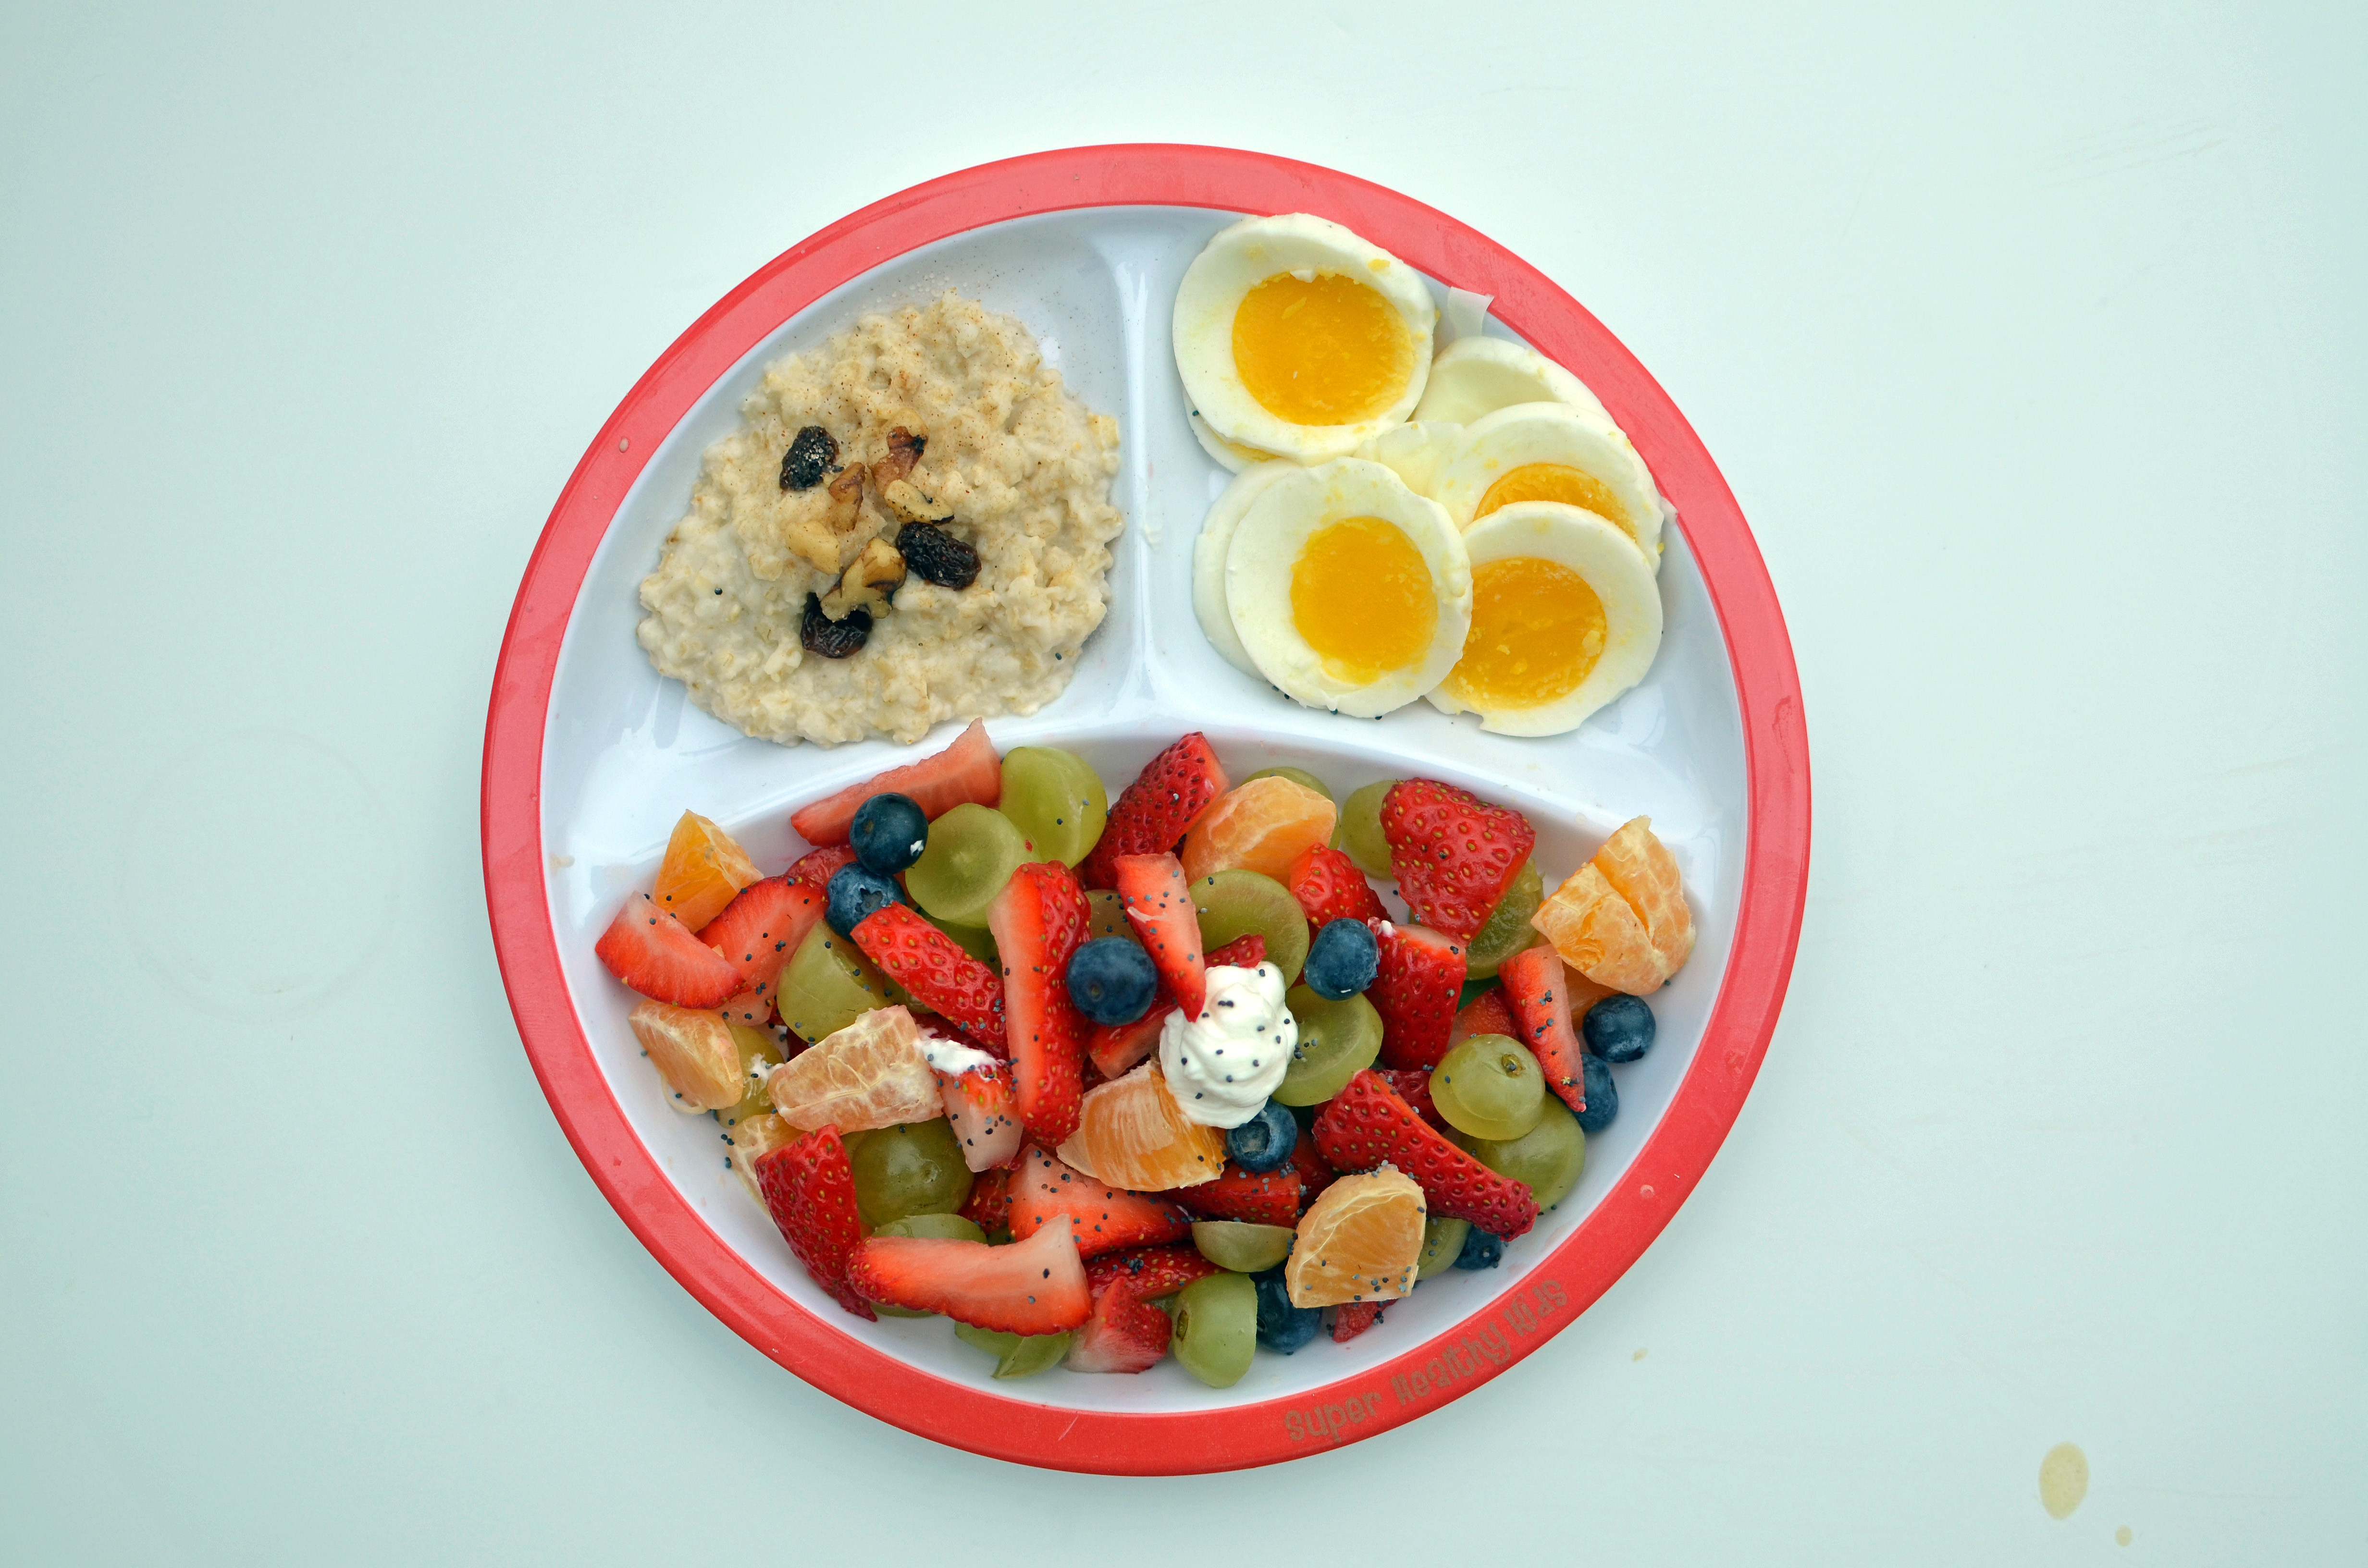 Healthy Breakfast Ideas For Kids  Why We Eat Fruit with Breakfast Every Day